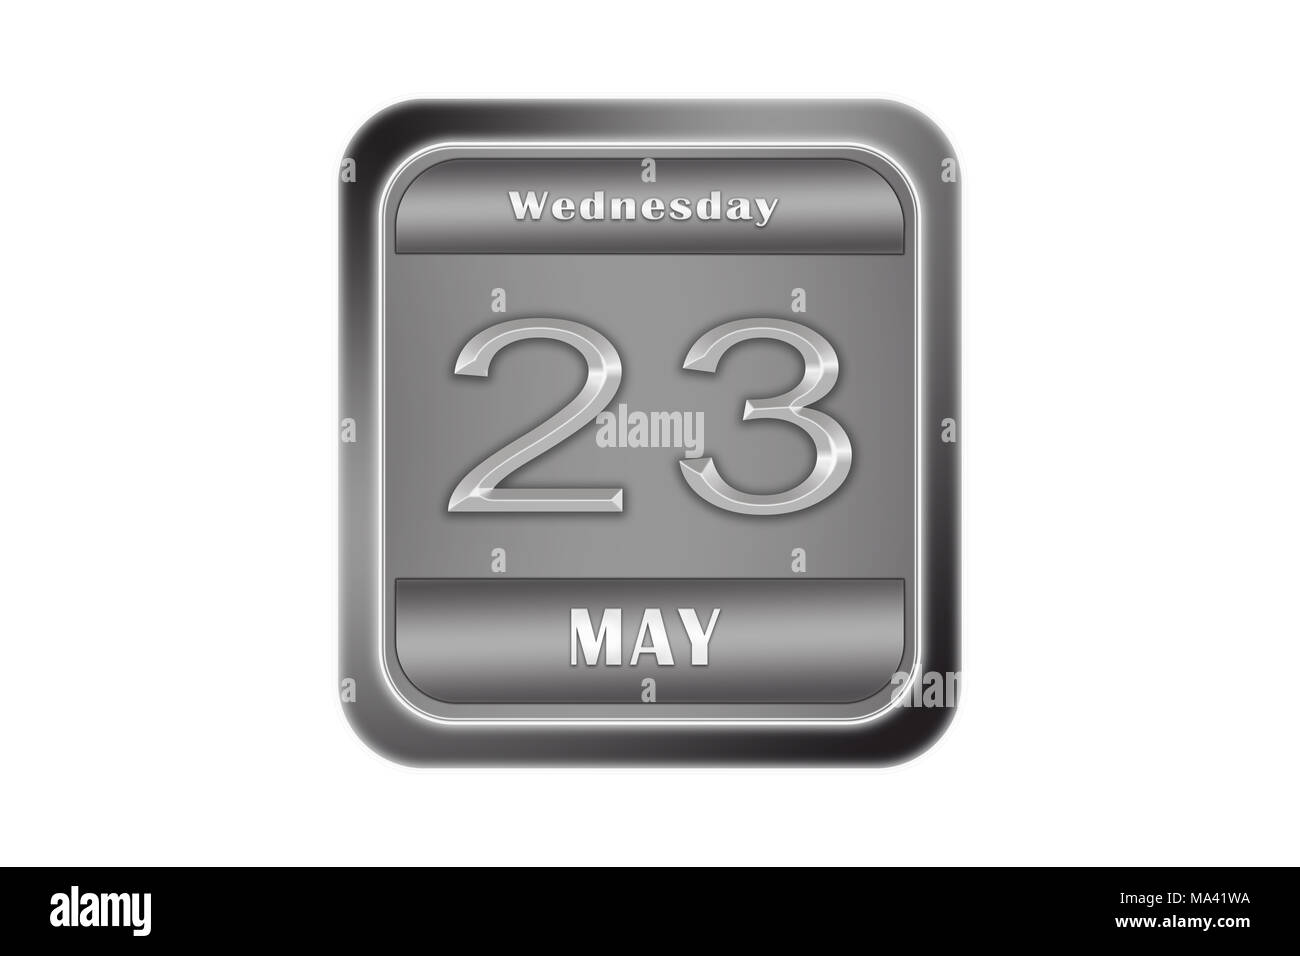 Date may 23, Wednesday written on a metal plate - Stock Image